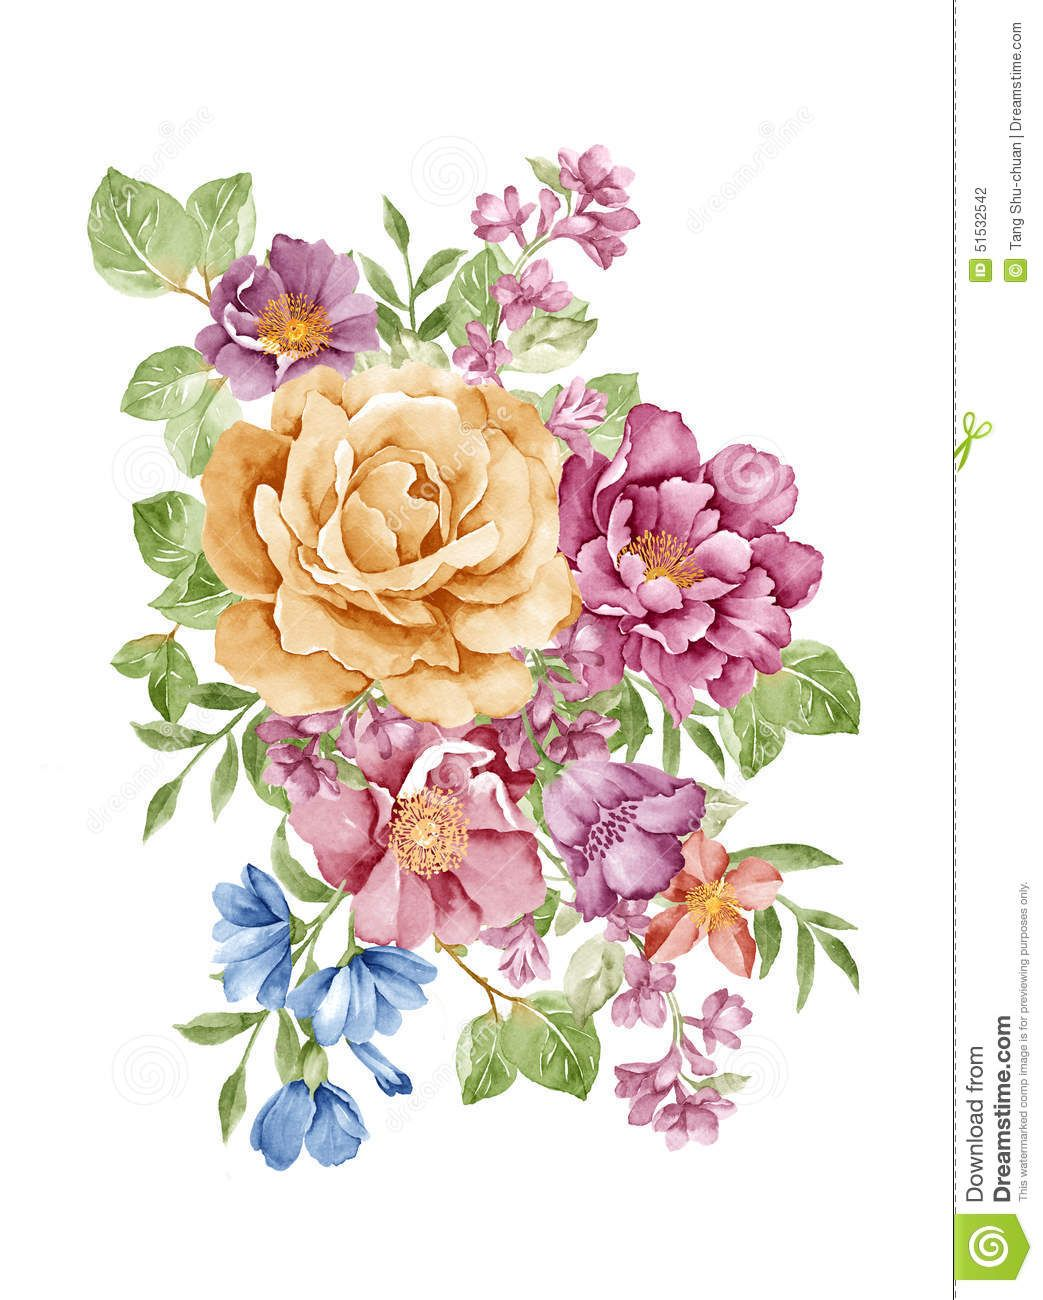 Watercolor-illustration-flower-set-simple-white-background